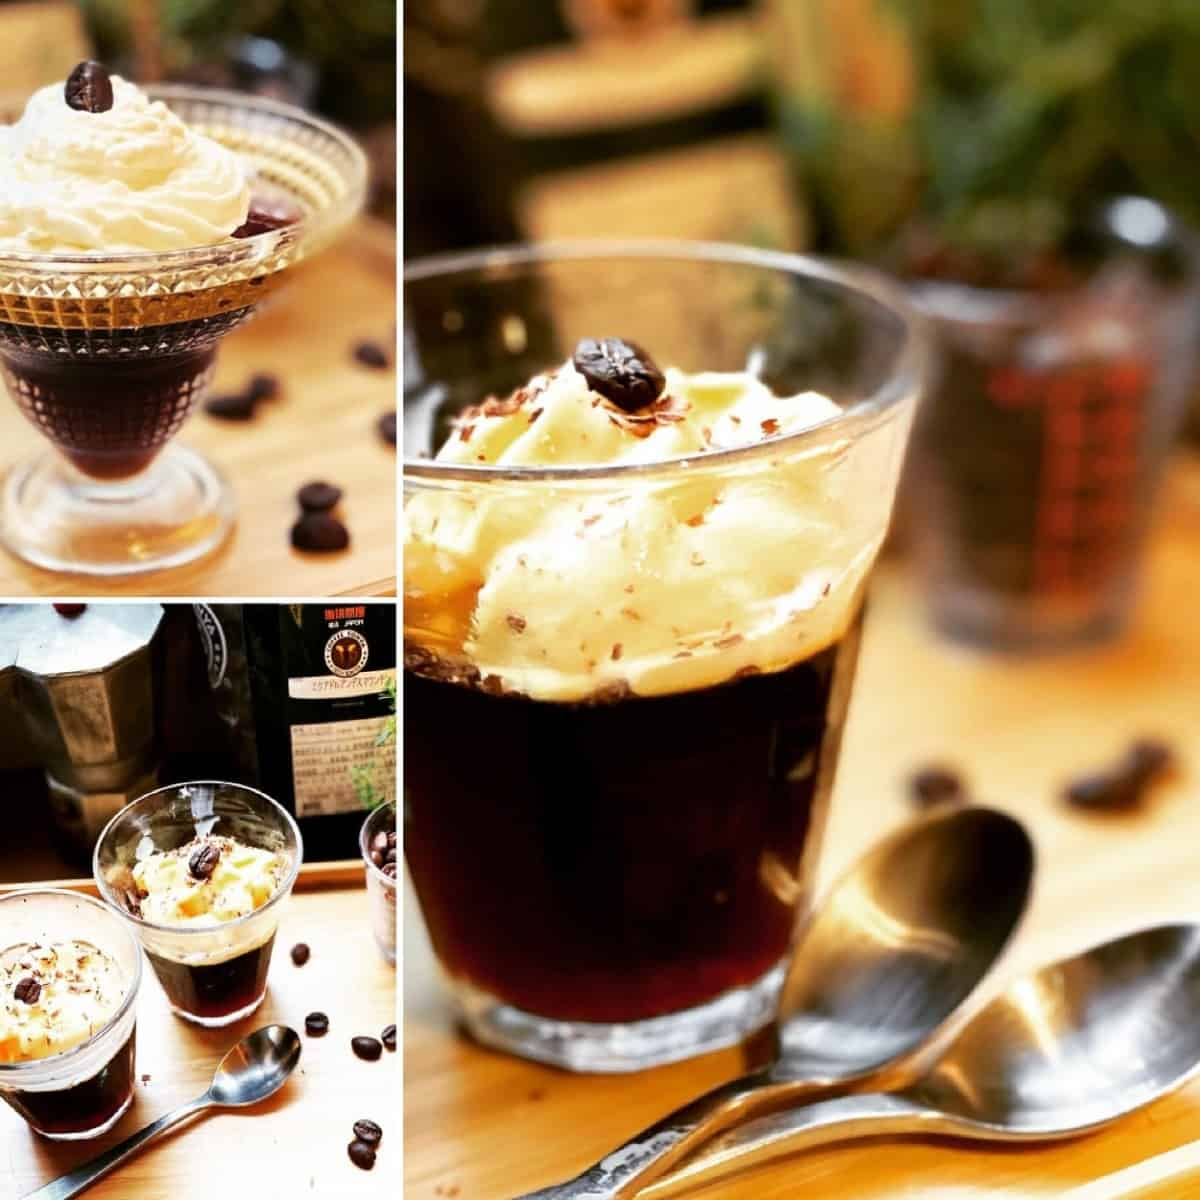 Coffee jelly dessert served in different dessert cups and along with whipped cream.